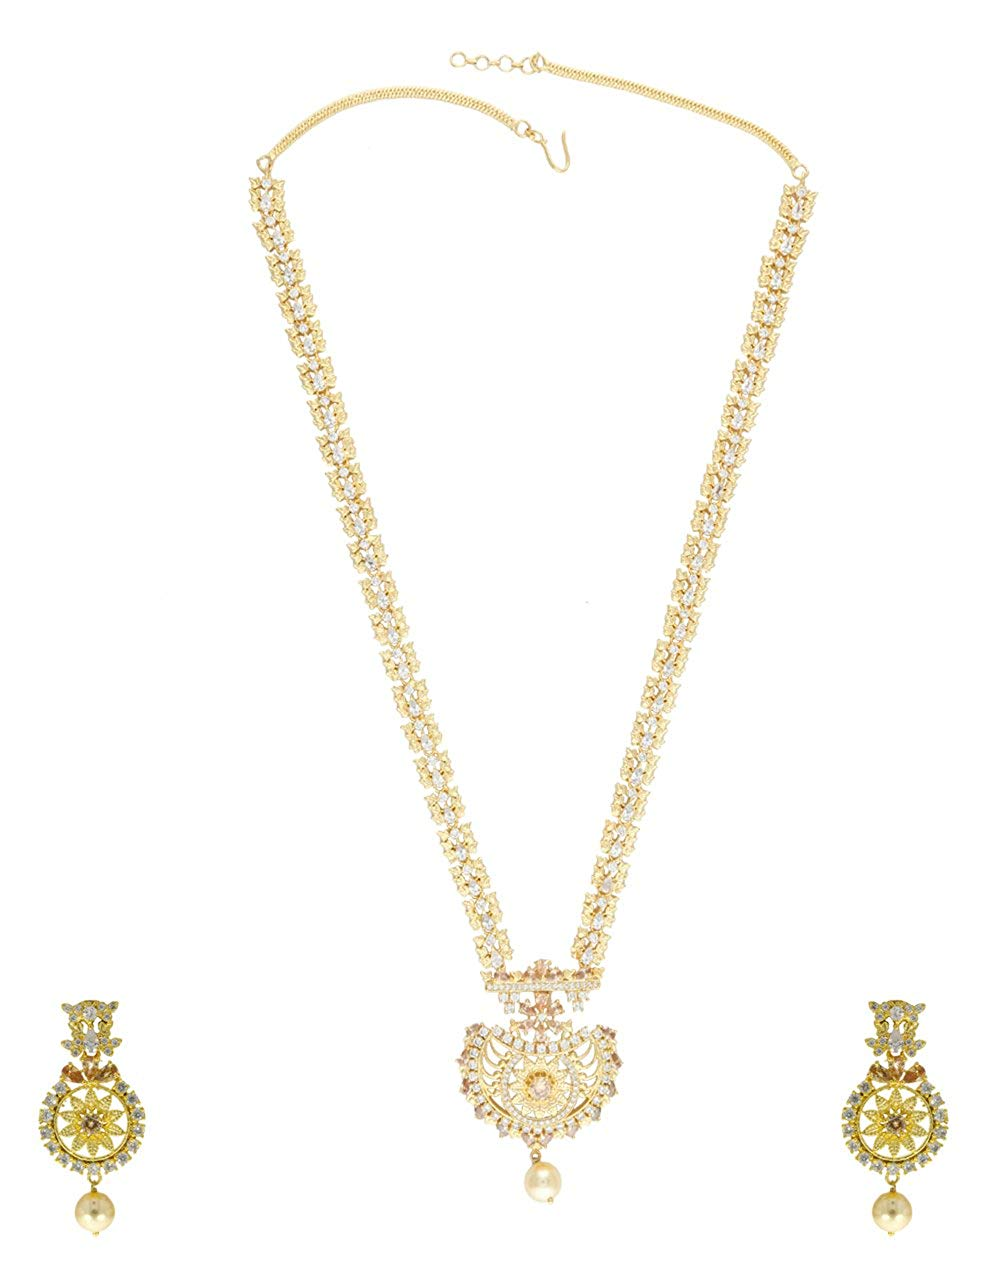 af62a79c6 Anuradha Art Gold Finish Styled With Peach-White Diamonds American Diamonds  Long Necklace Set For